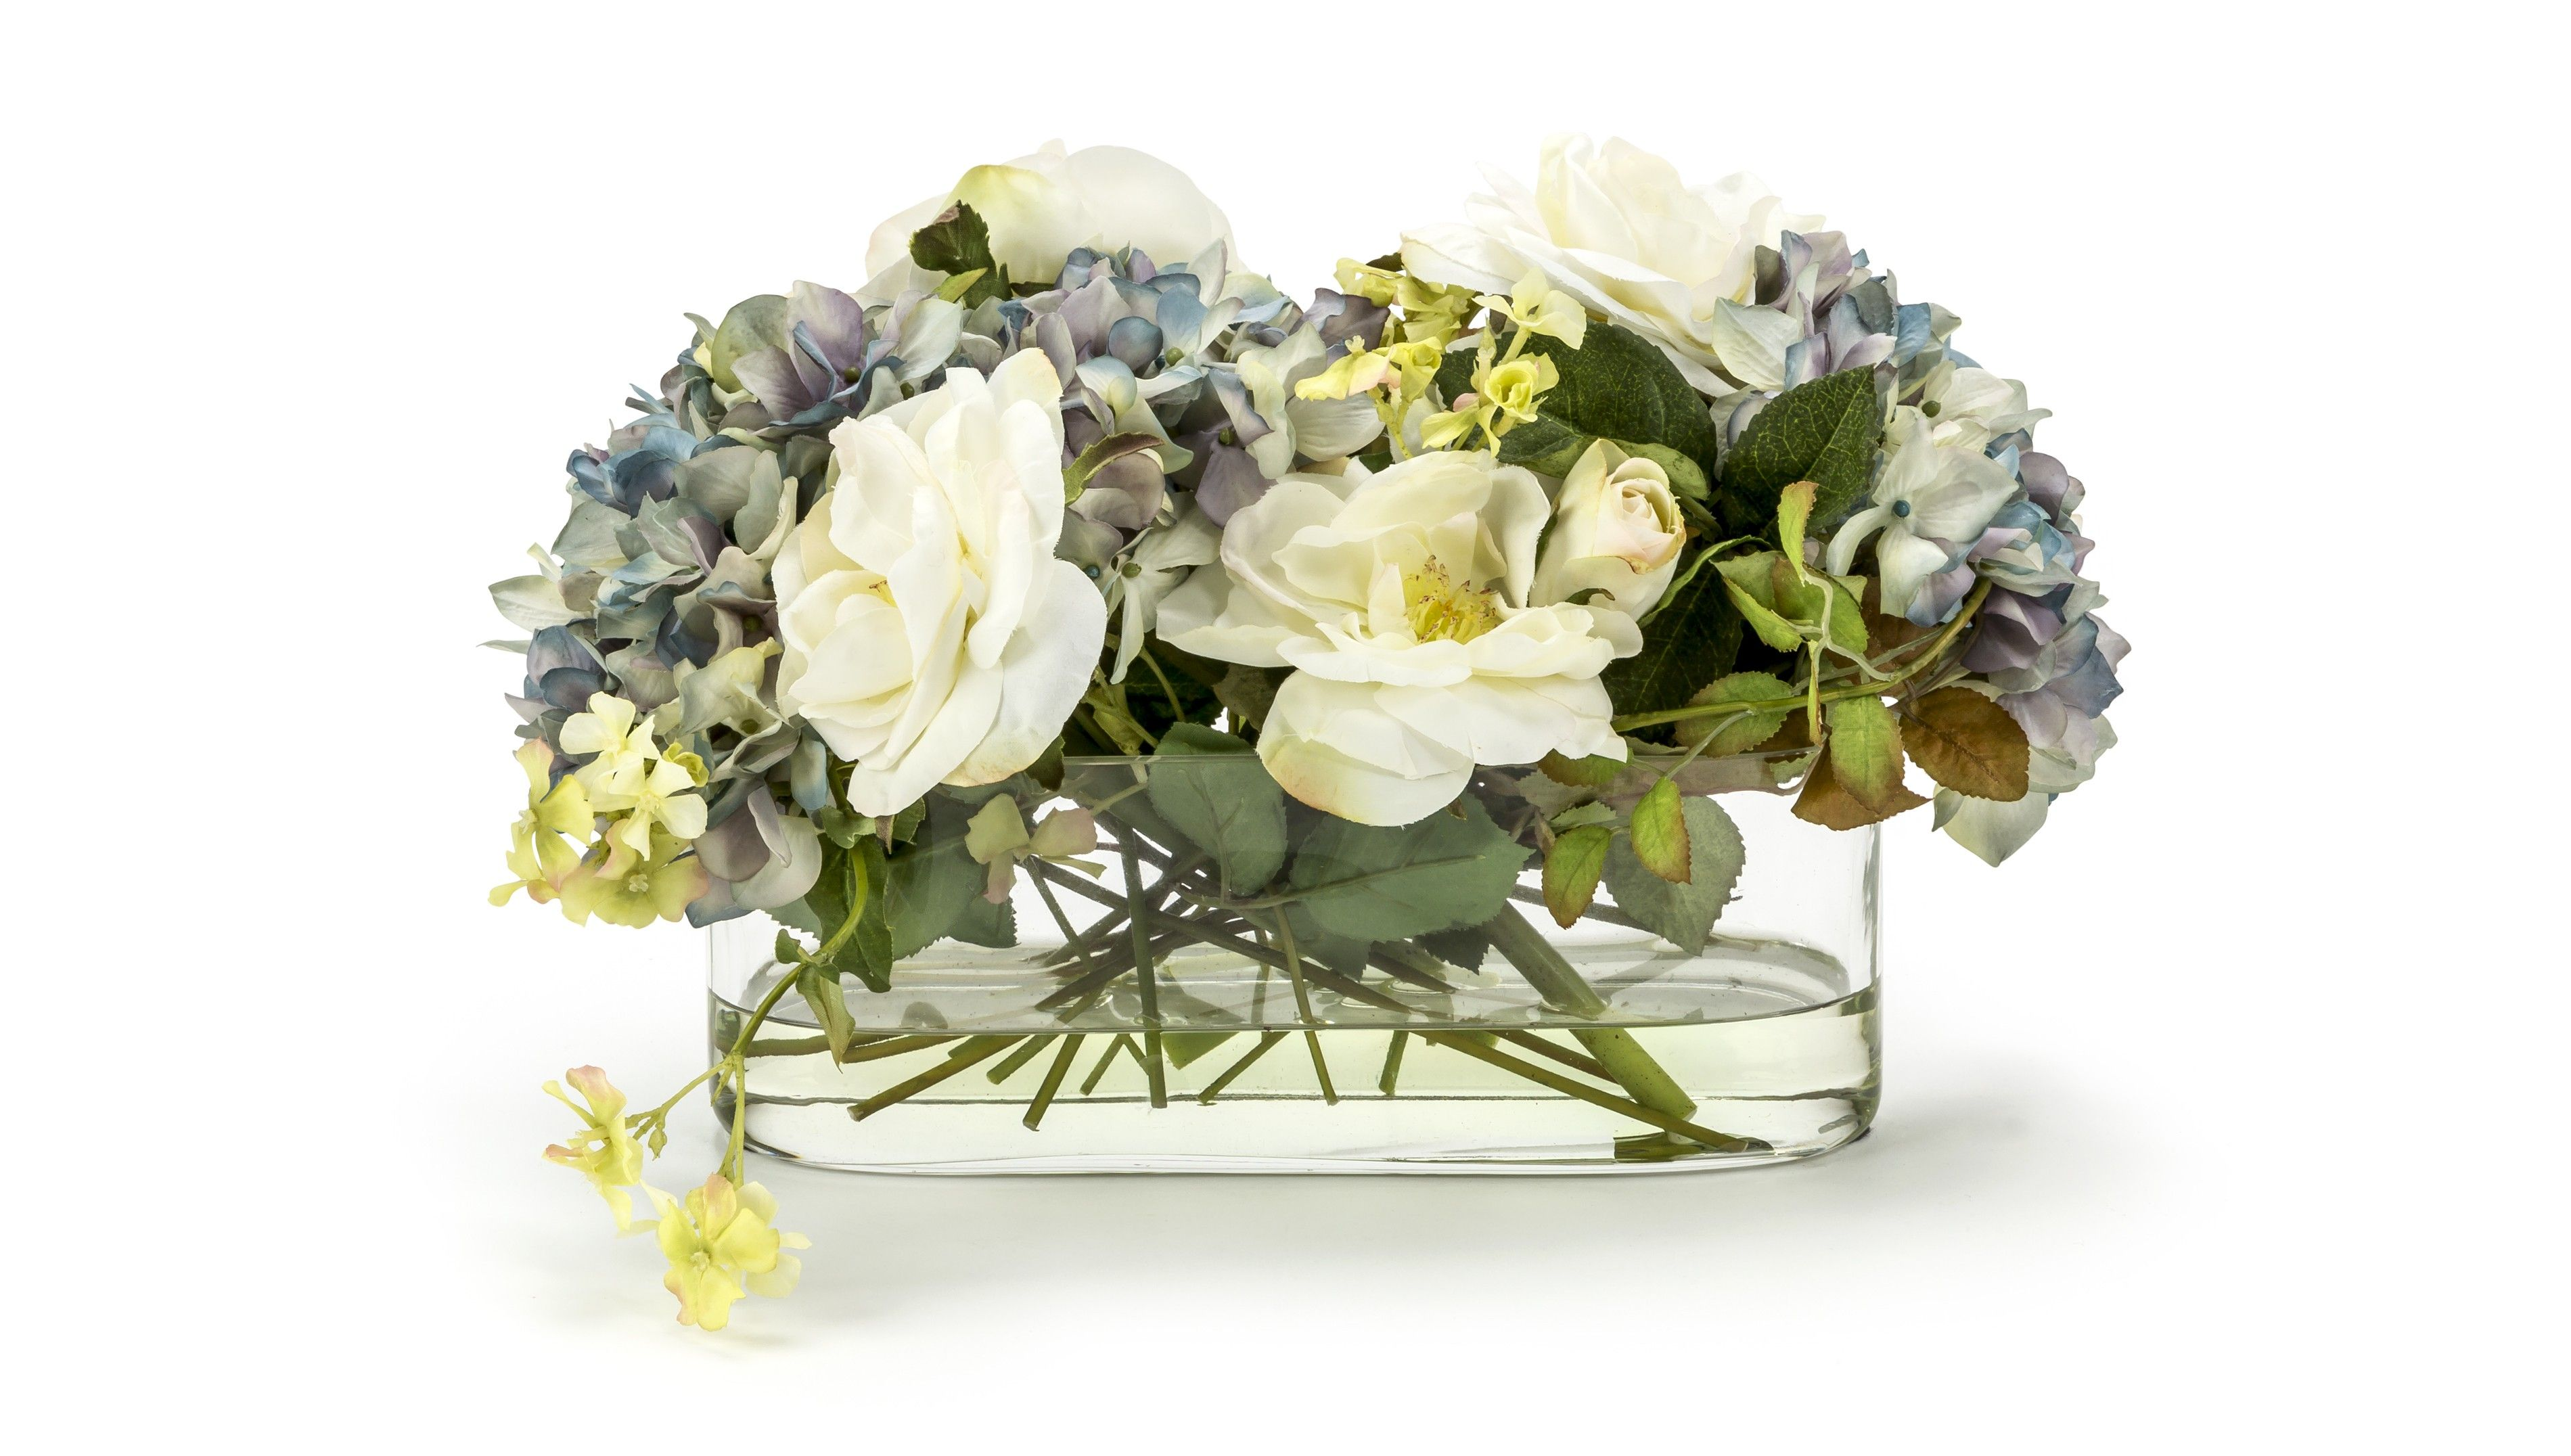 Faux Hydrangeas Roses Arrangement Online At Luxdeco Com Discover Luxury Collections From The Wo Faux Floral Arrangement Faux Hydrangea Floral Arrangements